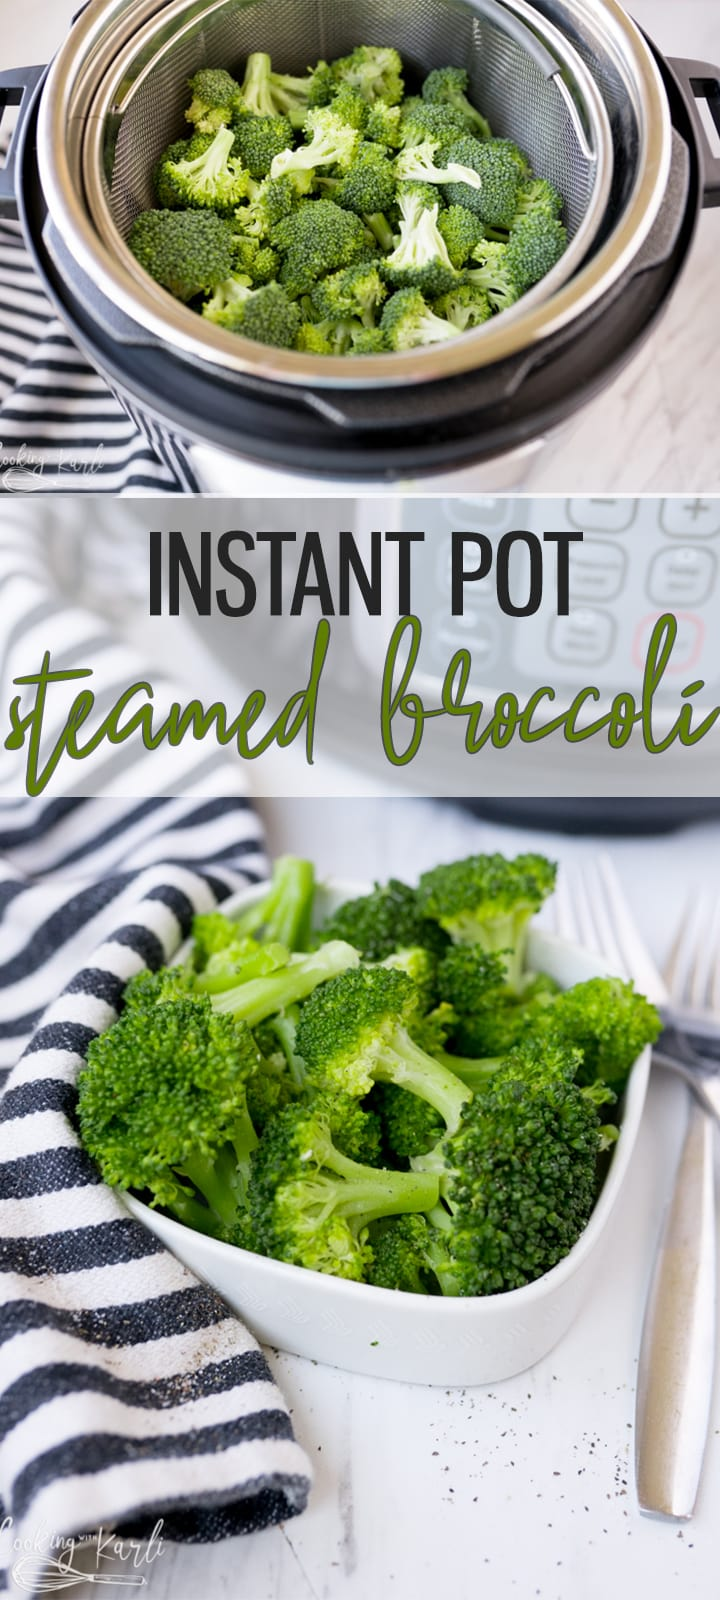 pin image for Instant Pot Broccoli